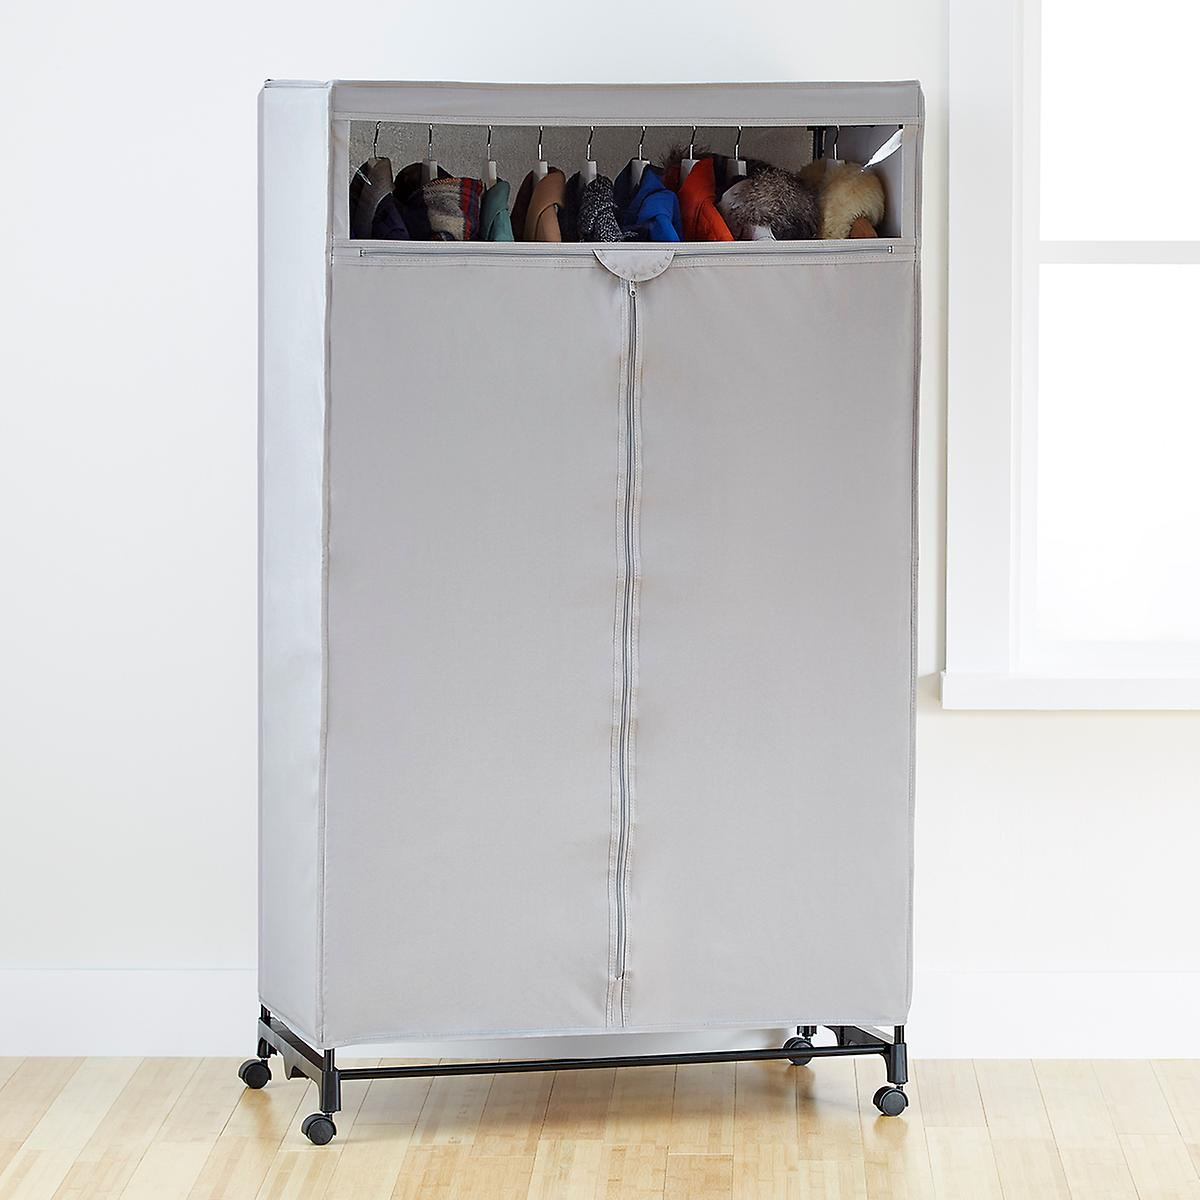 design steps decorating clean to wardrobes a wardrobe and closet clothing hgtv organize decluttered